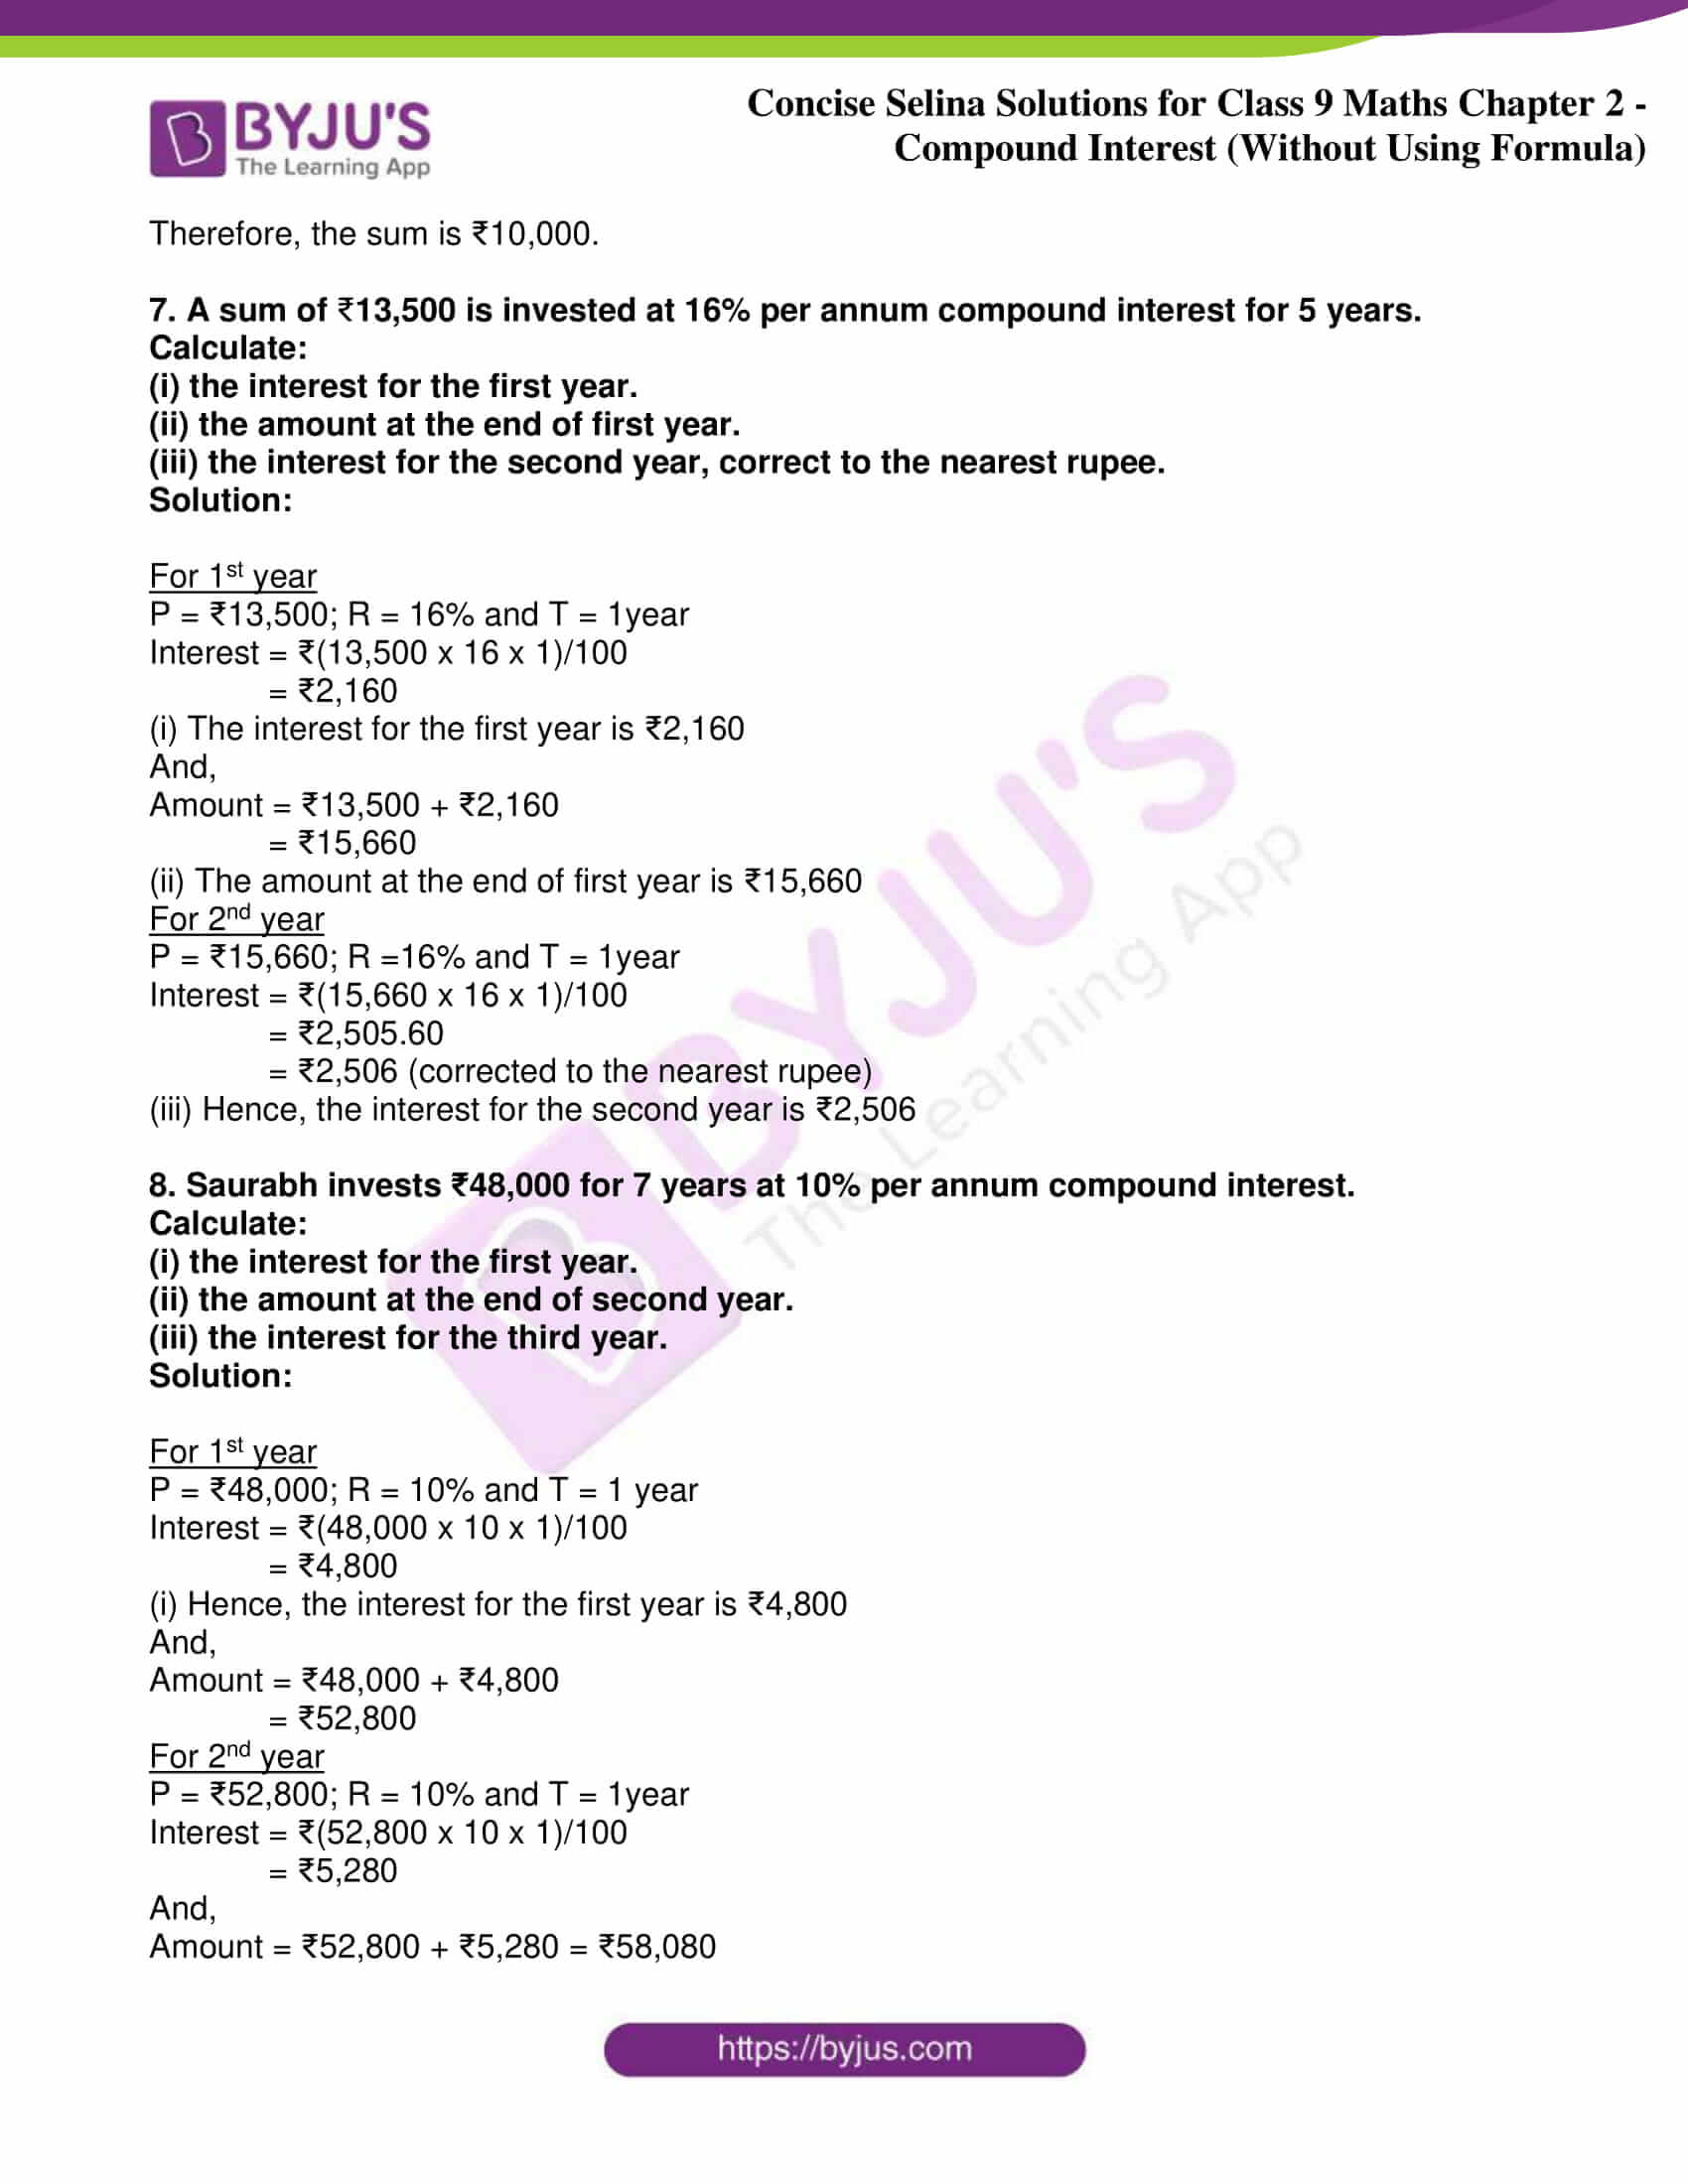 icse class 9 maths may10 selina solutions chapter 2 compound interest without using formula 27